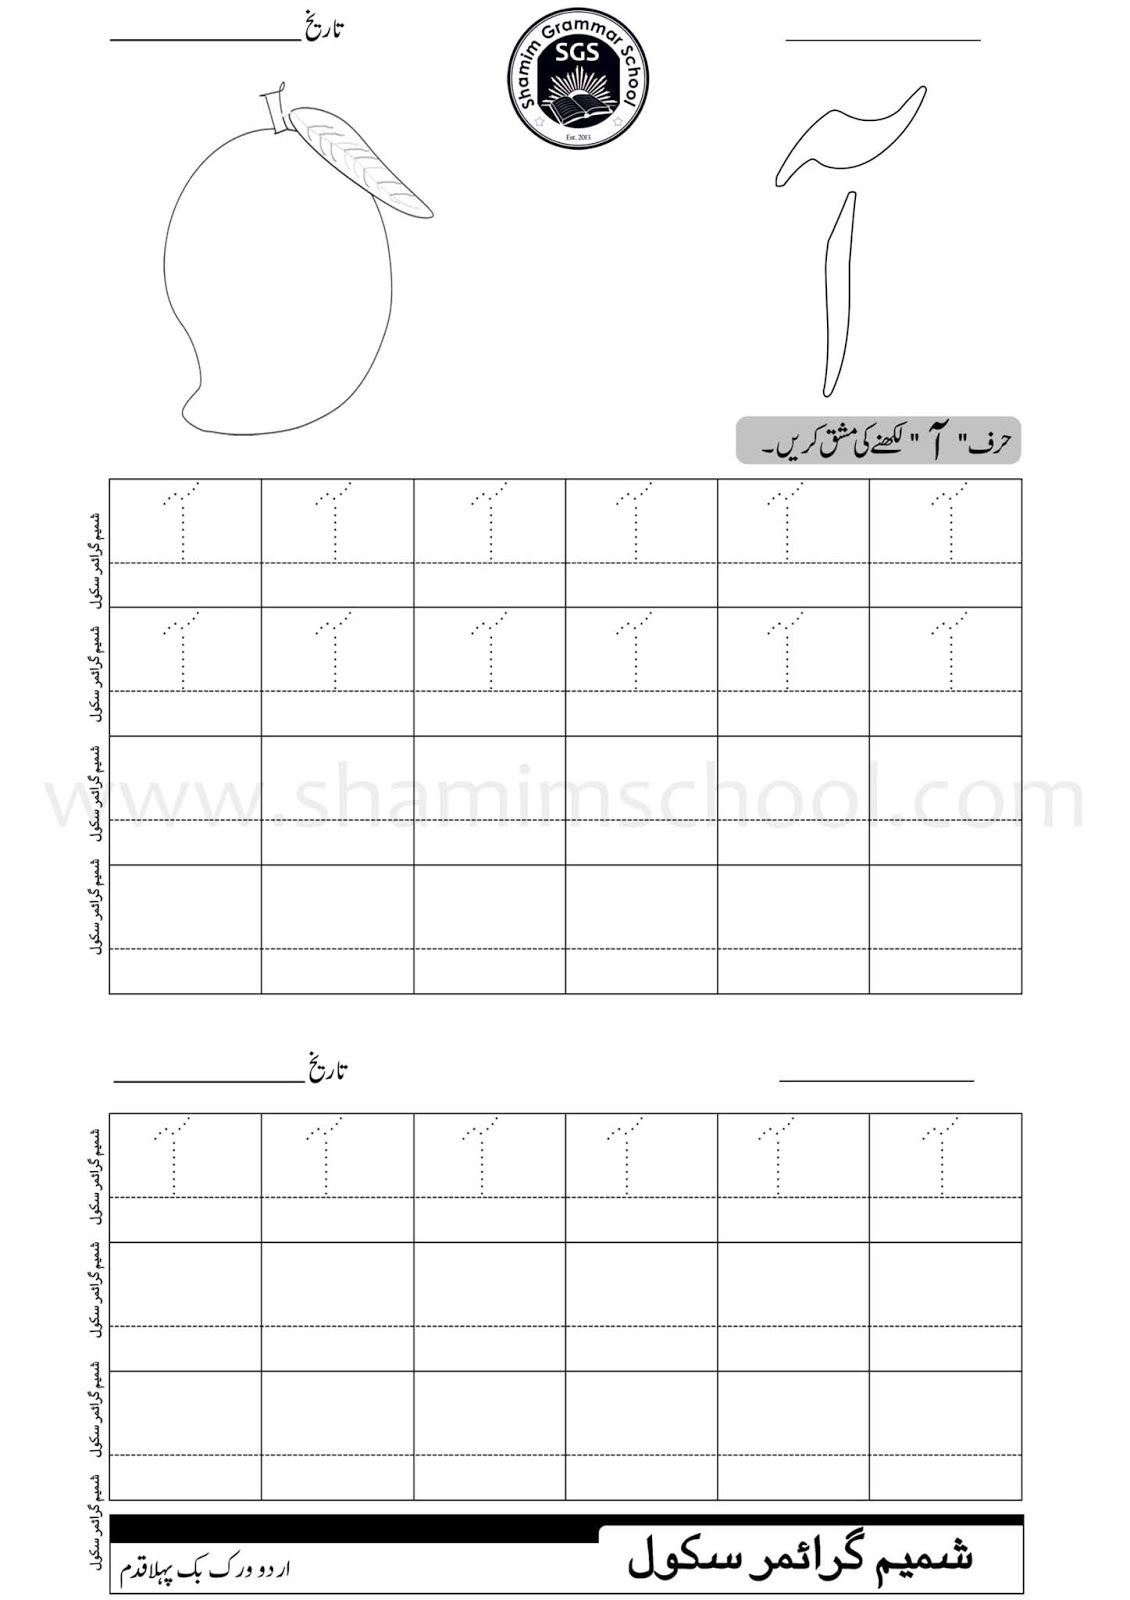 WORK SHEETS FOR PRE STANDARDS MATH,ENGLISH,SCIENCE,URDU